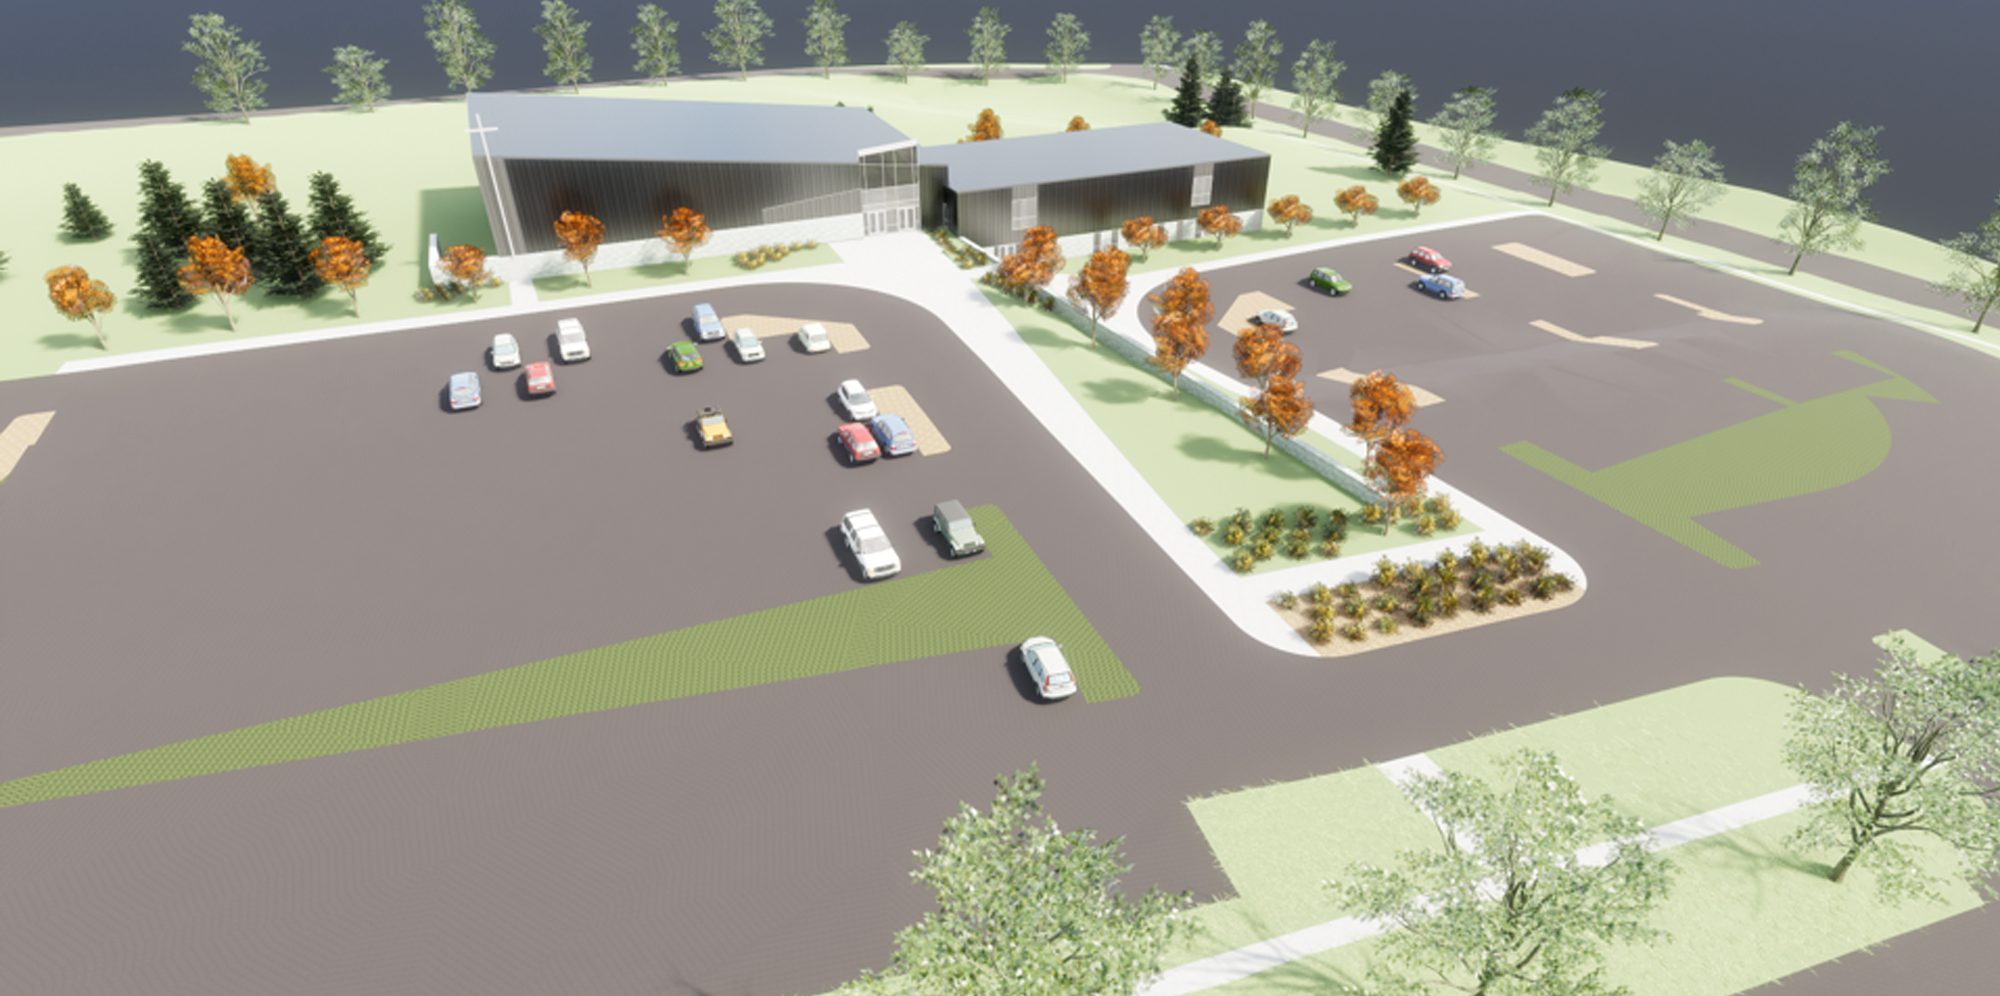 Overall Site with Parking